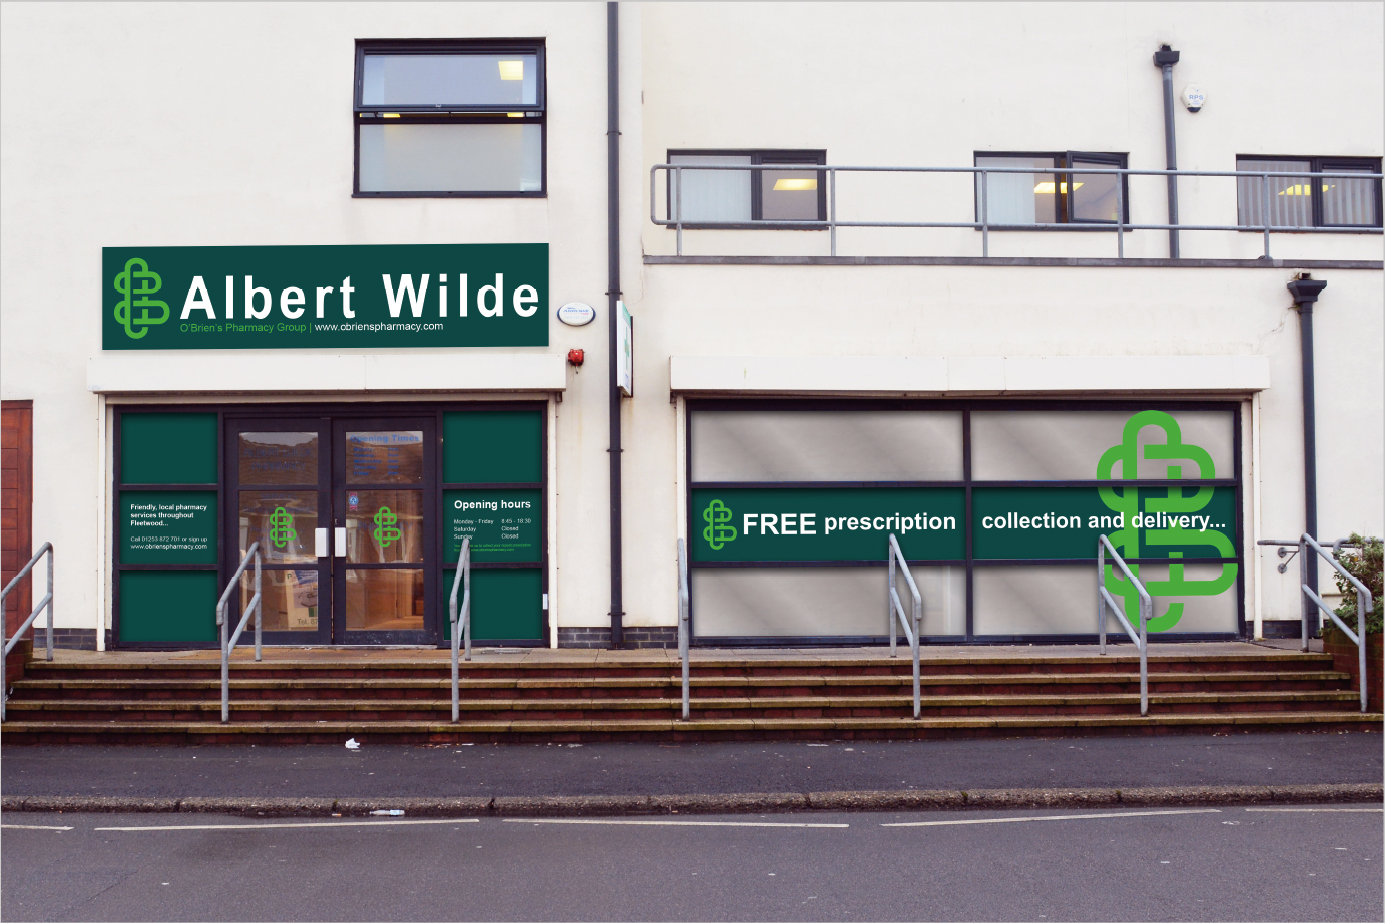 DOSE Design and Marketing O'Brien's Pharmacy Signage Scheme Albert Wilde Exterior